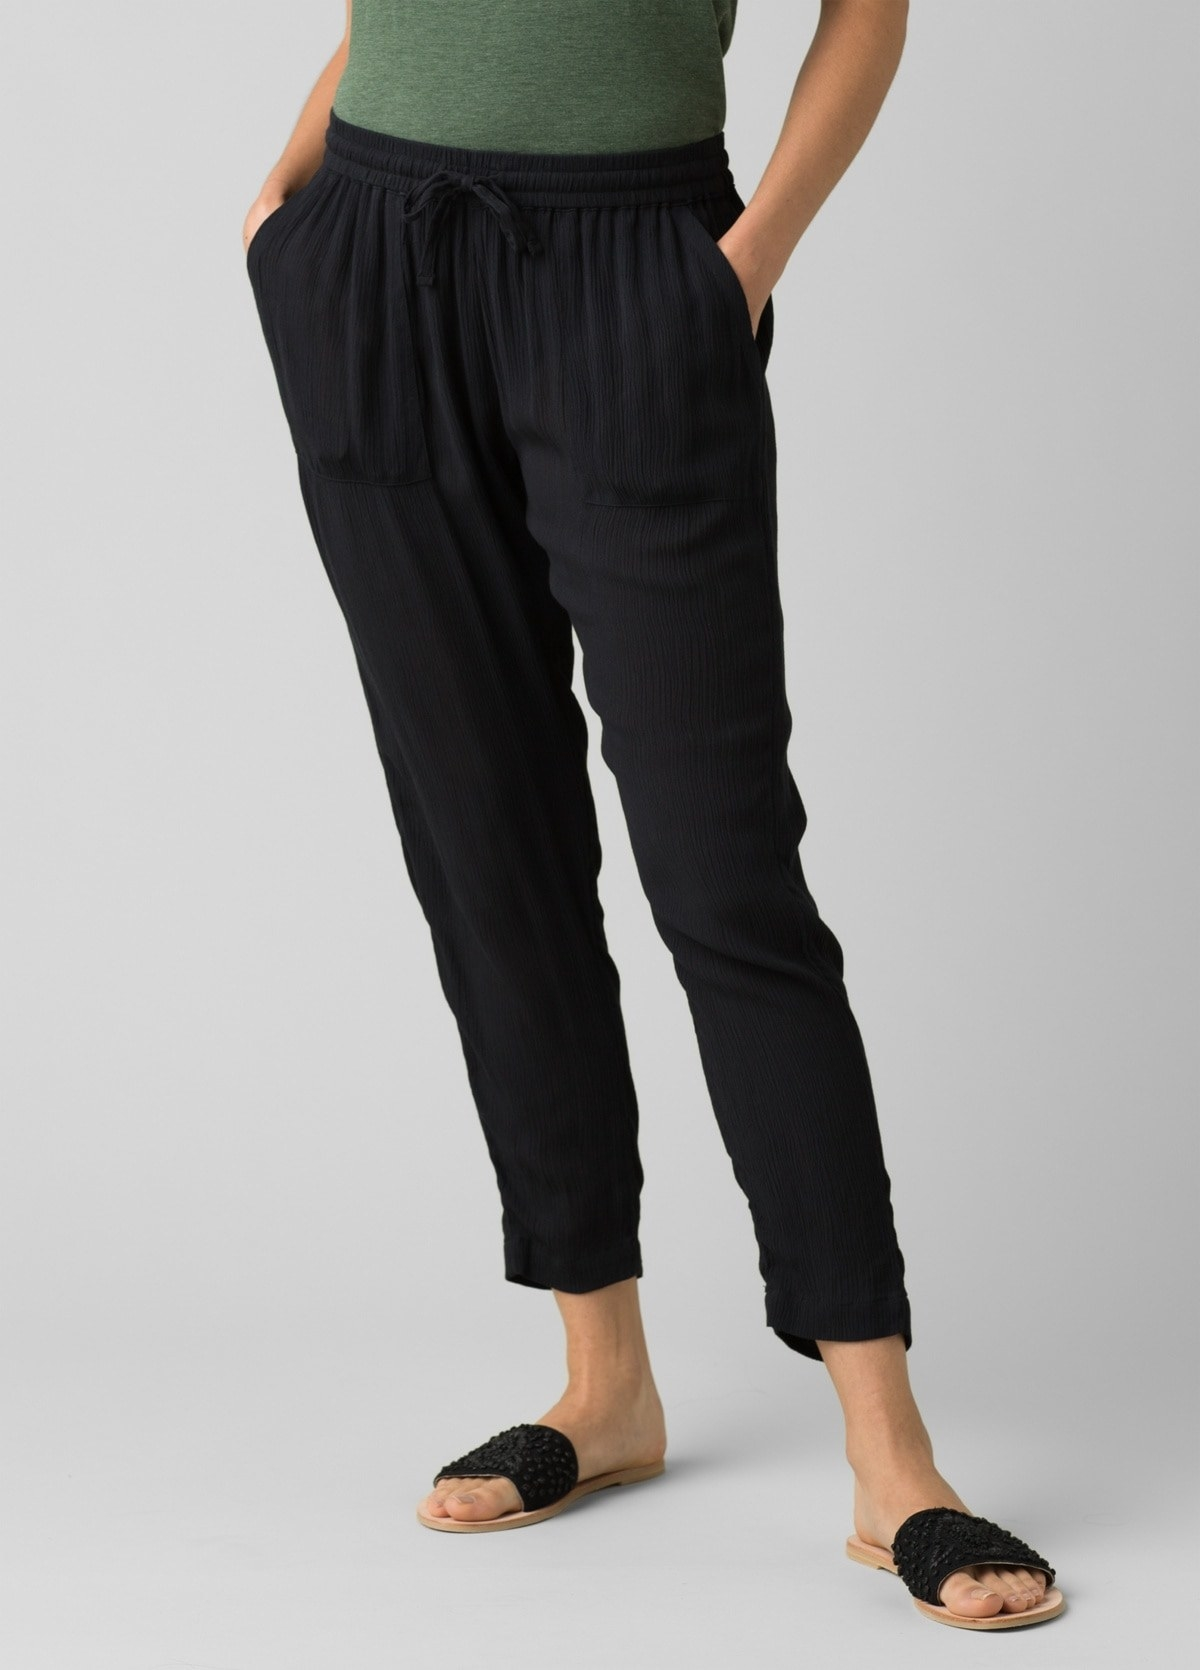 model in black ankle-length pants with drawstring